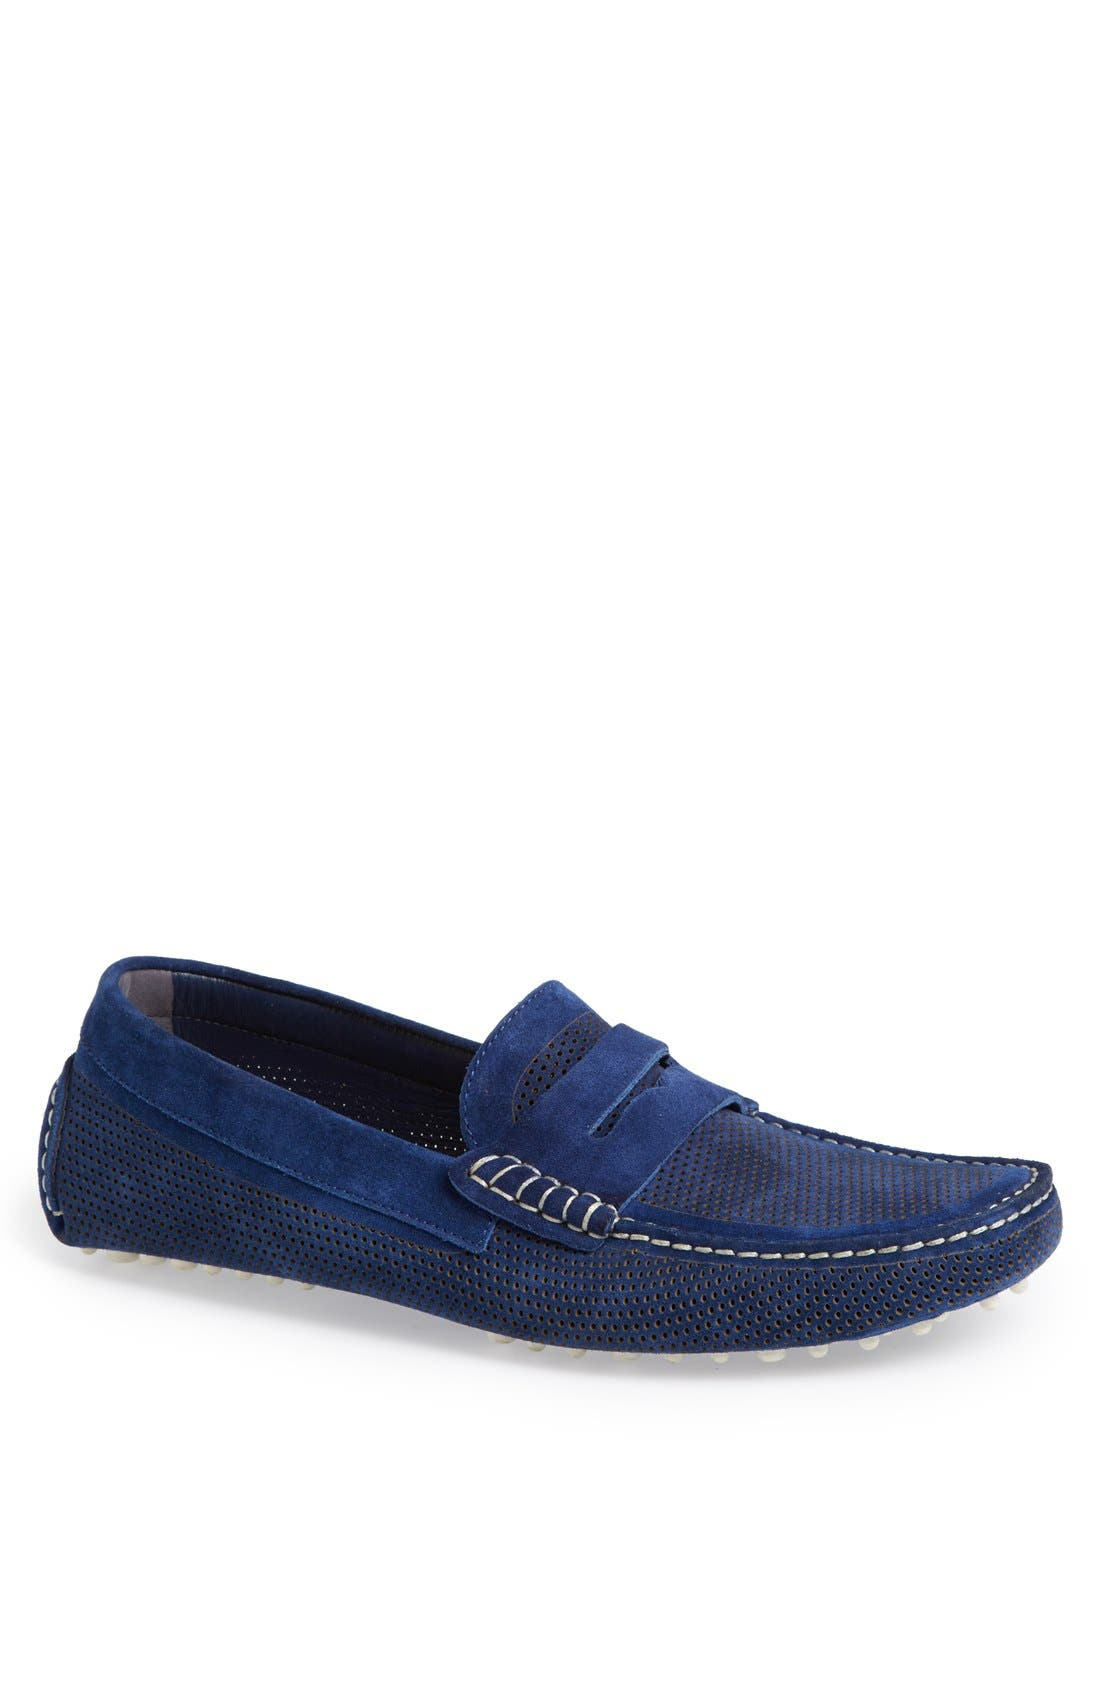 Alternate Image 1 Selected - Canali Perforated Suede Driving Shoe (Men)